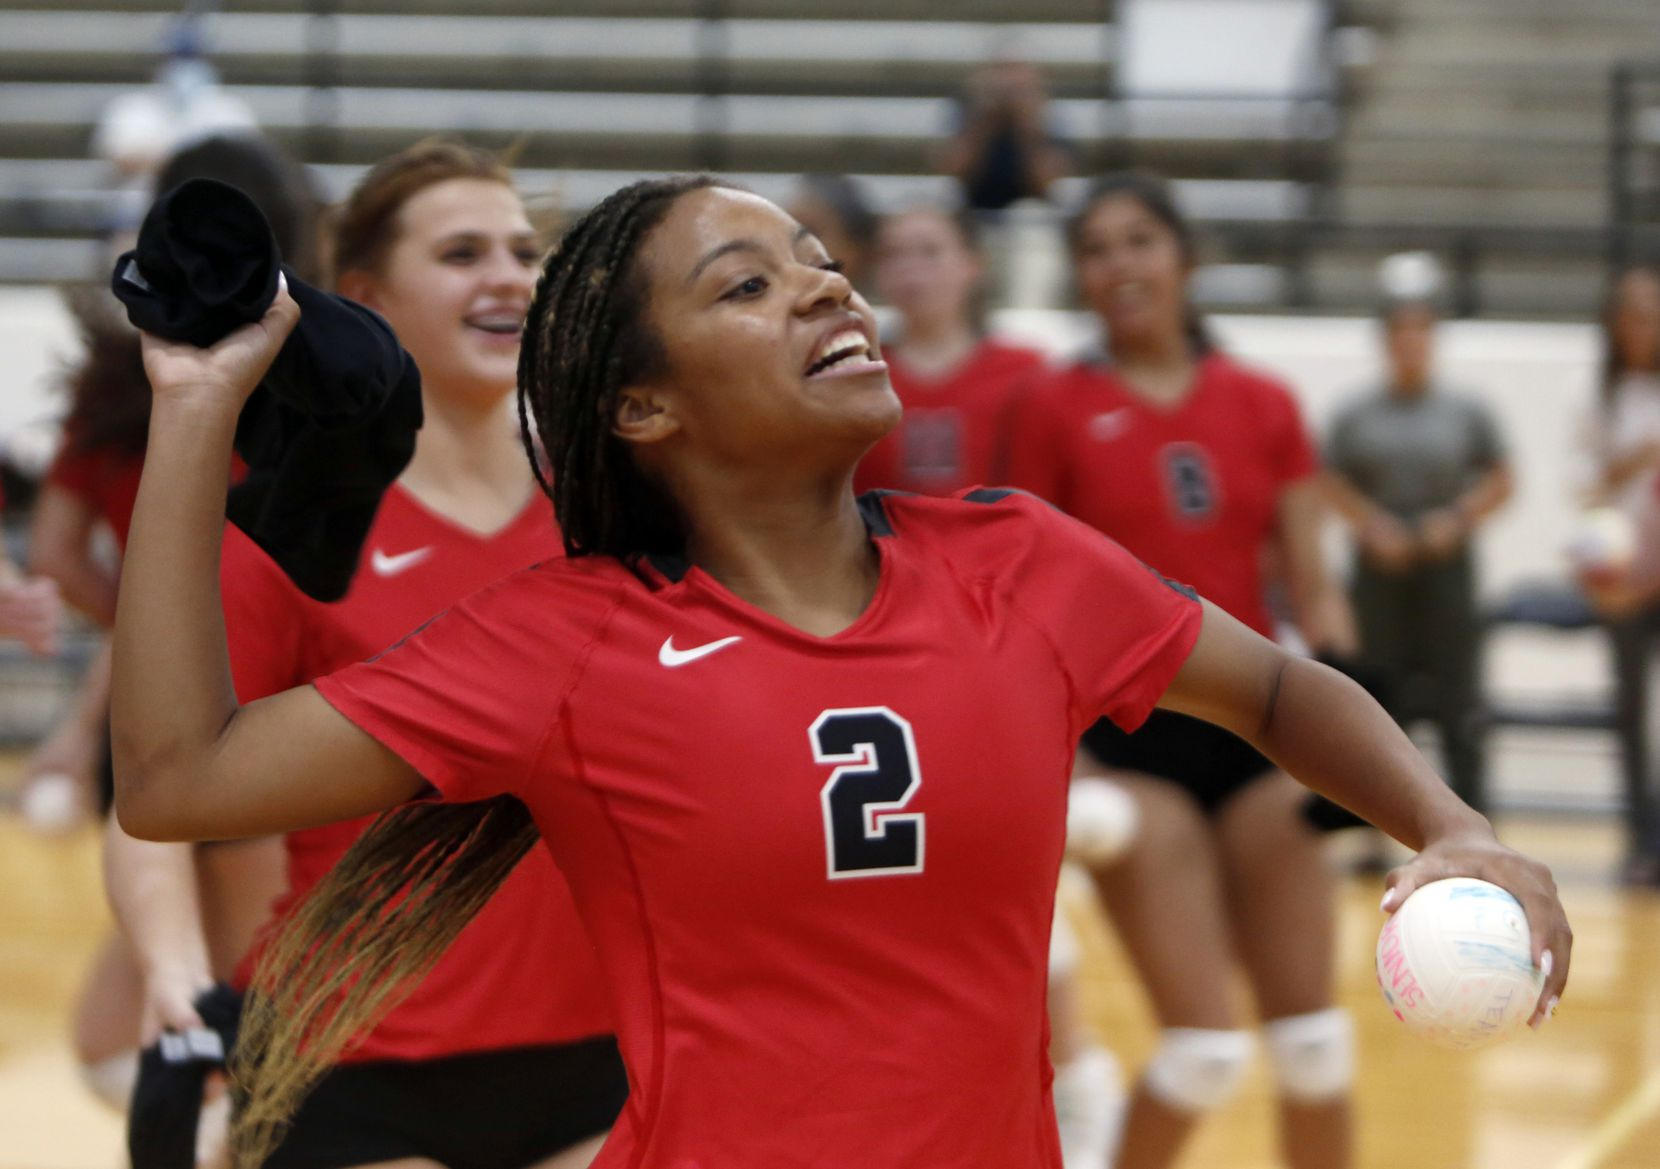 Arlington Martin's Aubrey Wright (2) prepares to launch a t-shirt into the crowd following team introductions prior to the start of their match against South Grand Prairie. Martin won in straight sets. The two teams played their volleyball match at Arlington Martin High School in Arlington on September 14, 2021. (Steve Hamm/ Special Contributor)